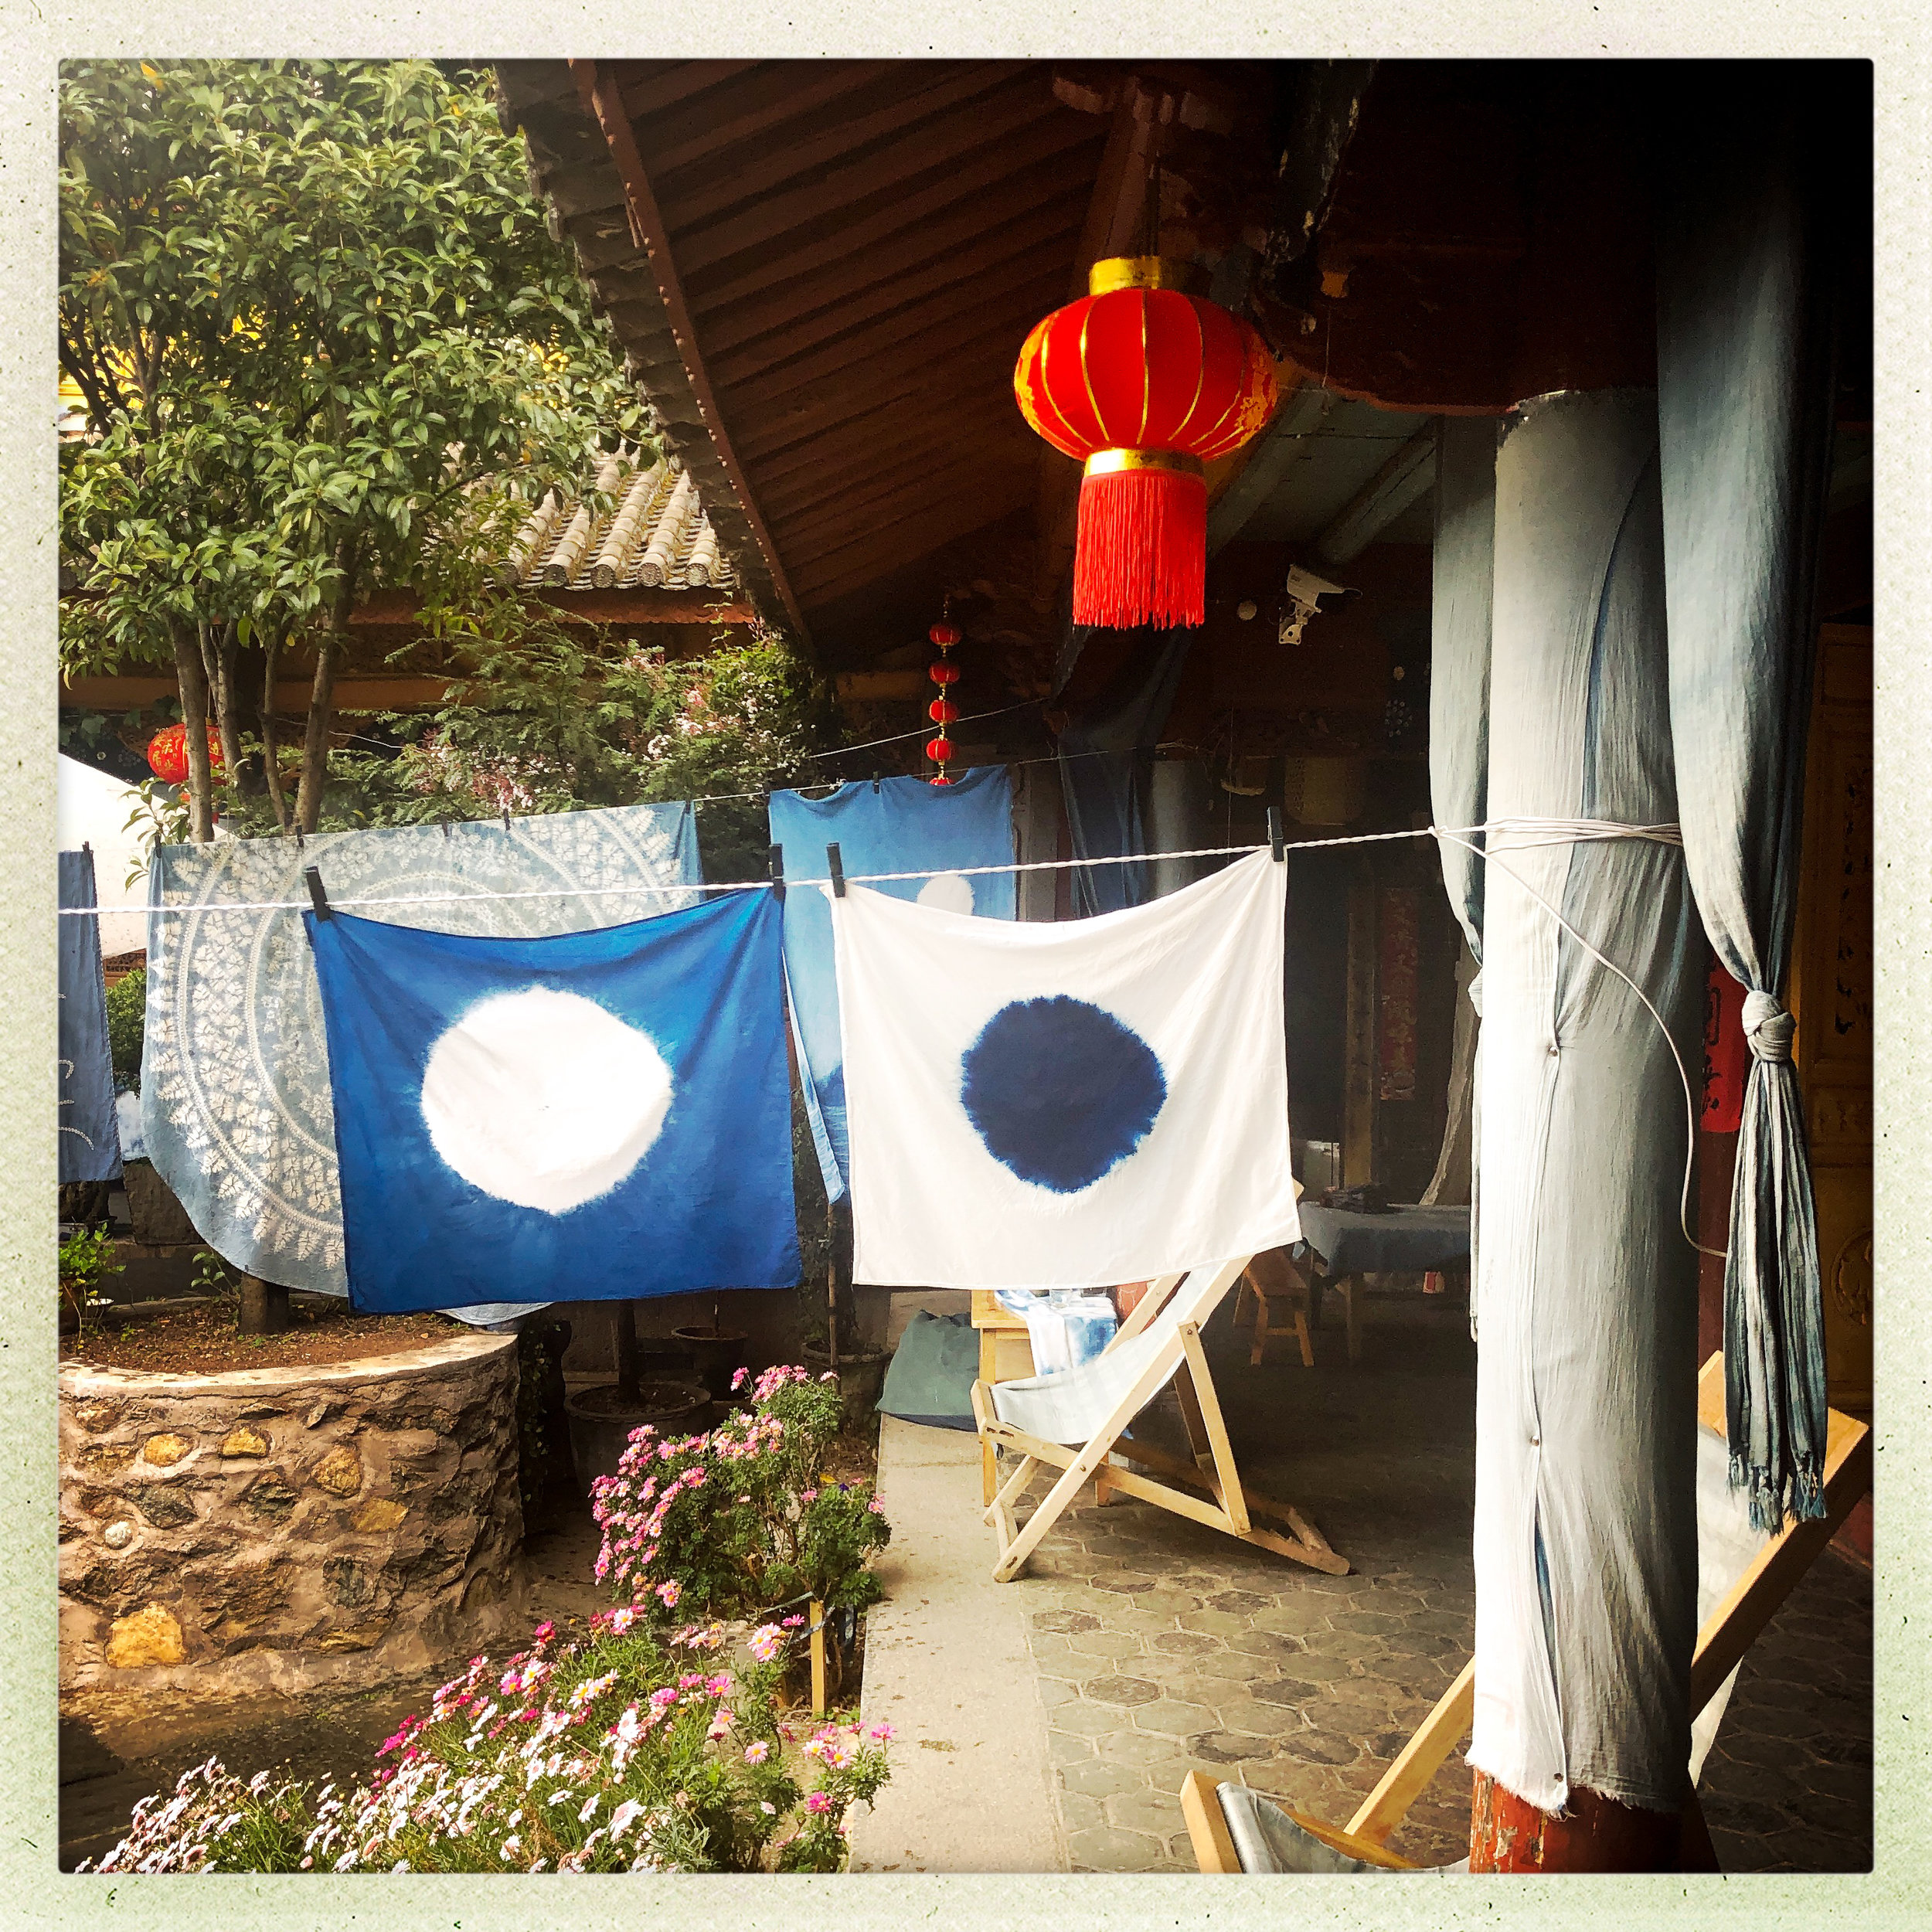 My Sun, and My Moon hanging in the courtyard at Lanxu